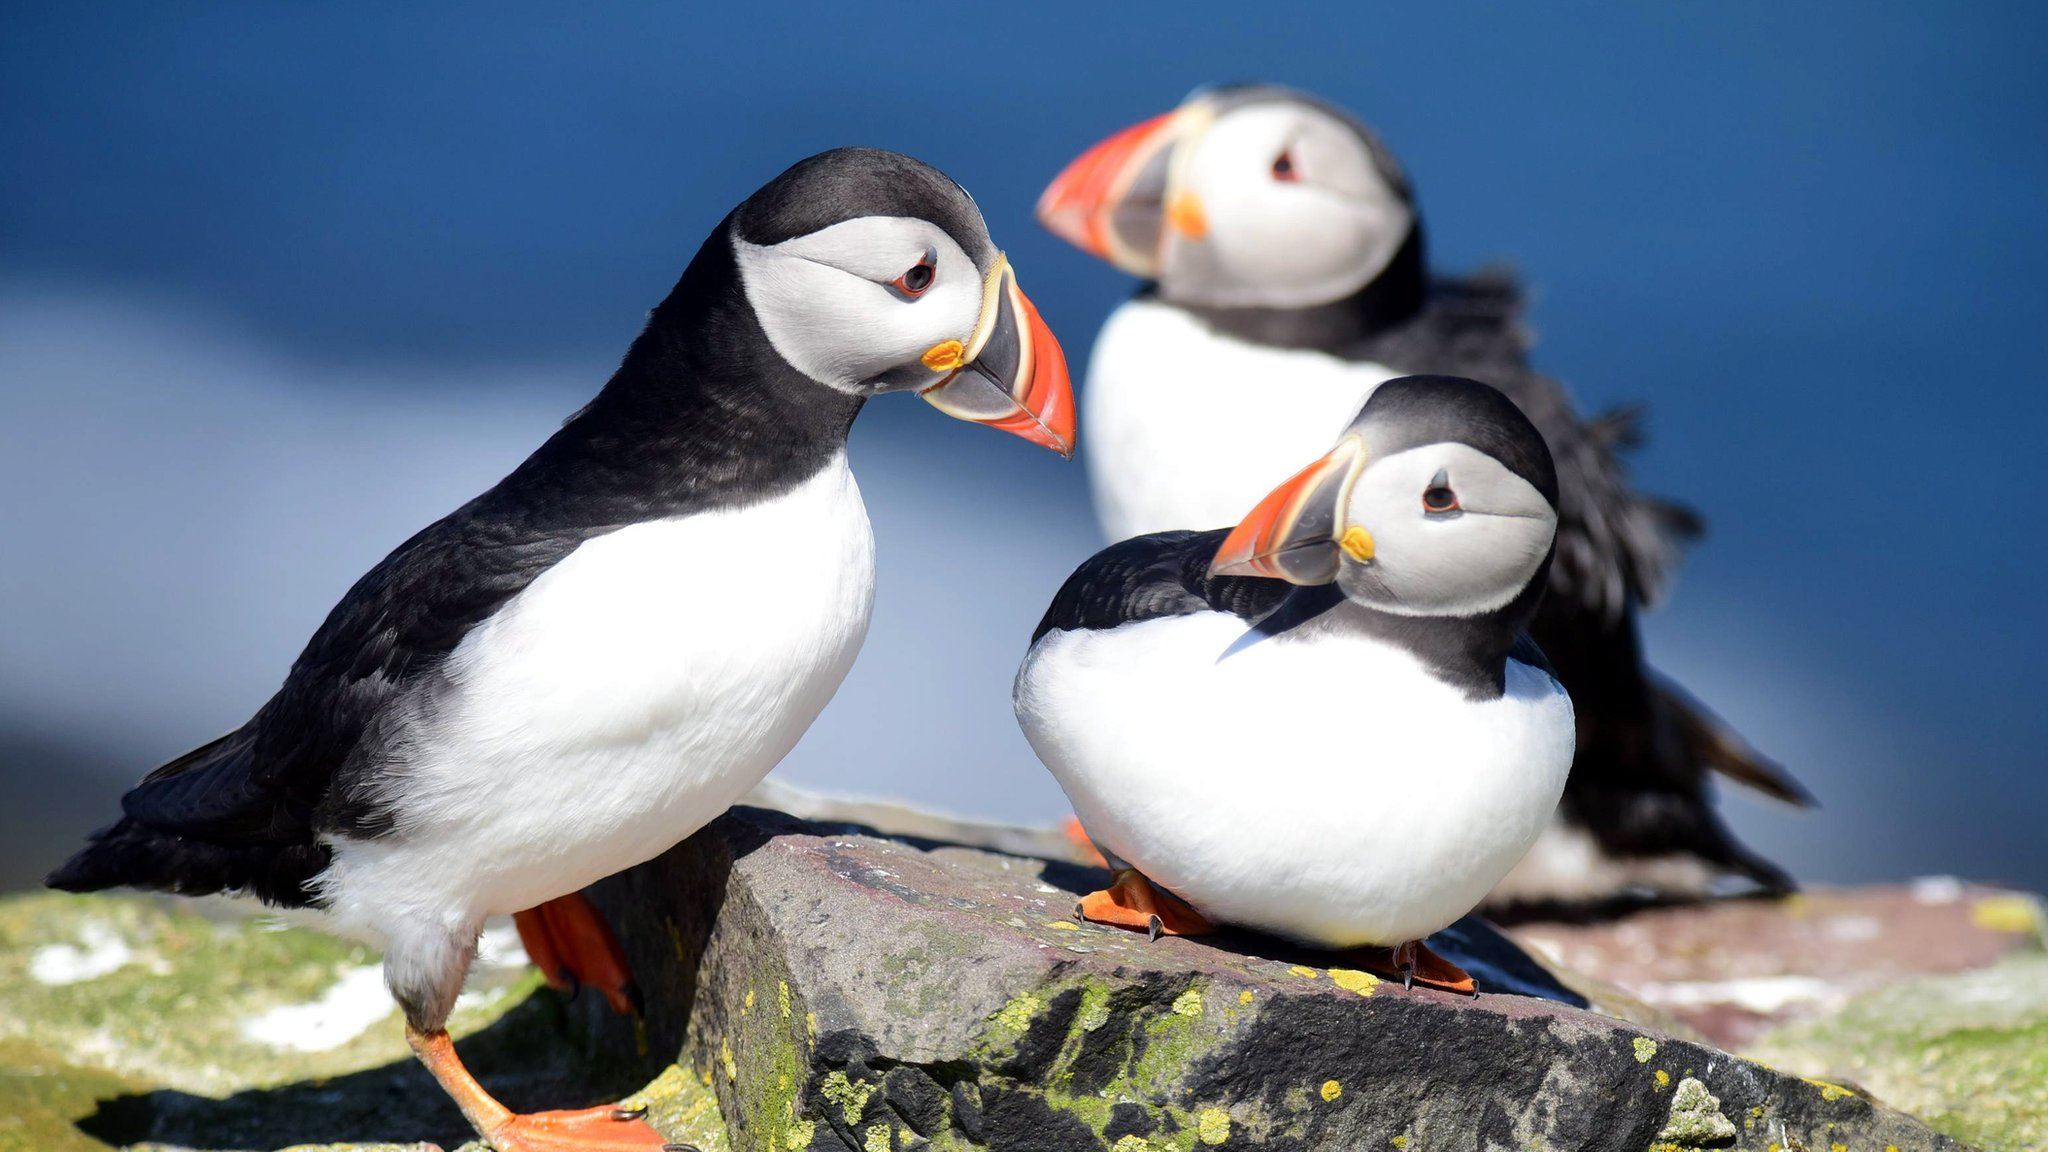 Farne Island puffin numbers on the rise, survey shows